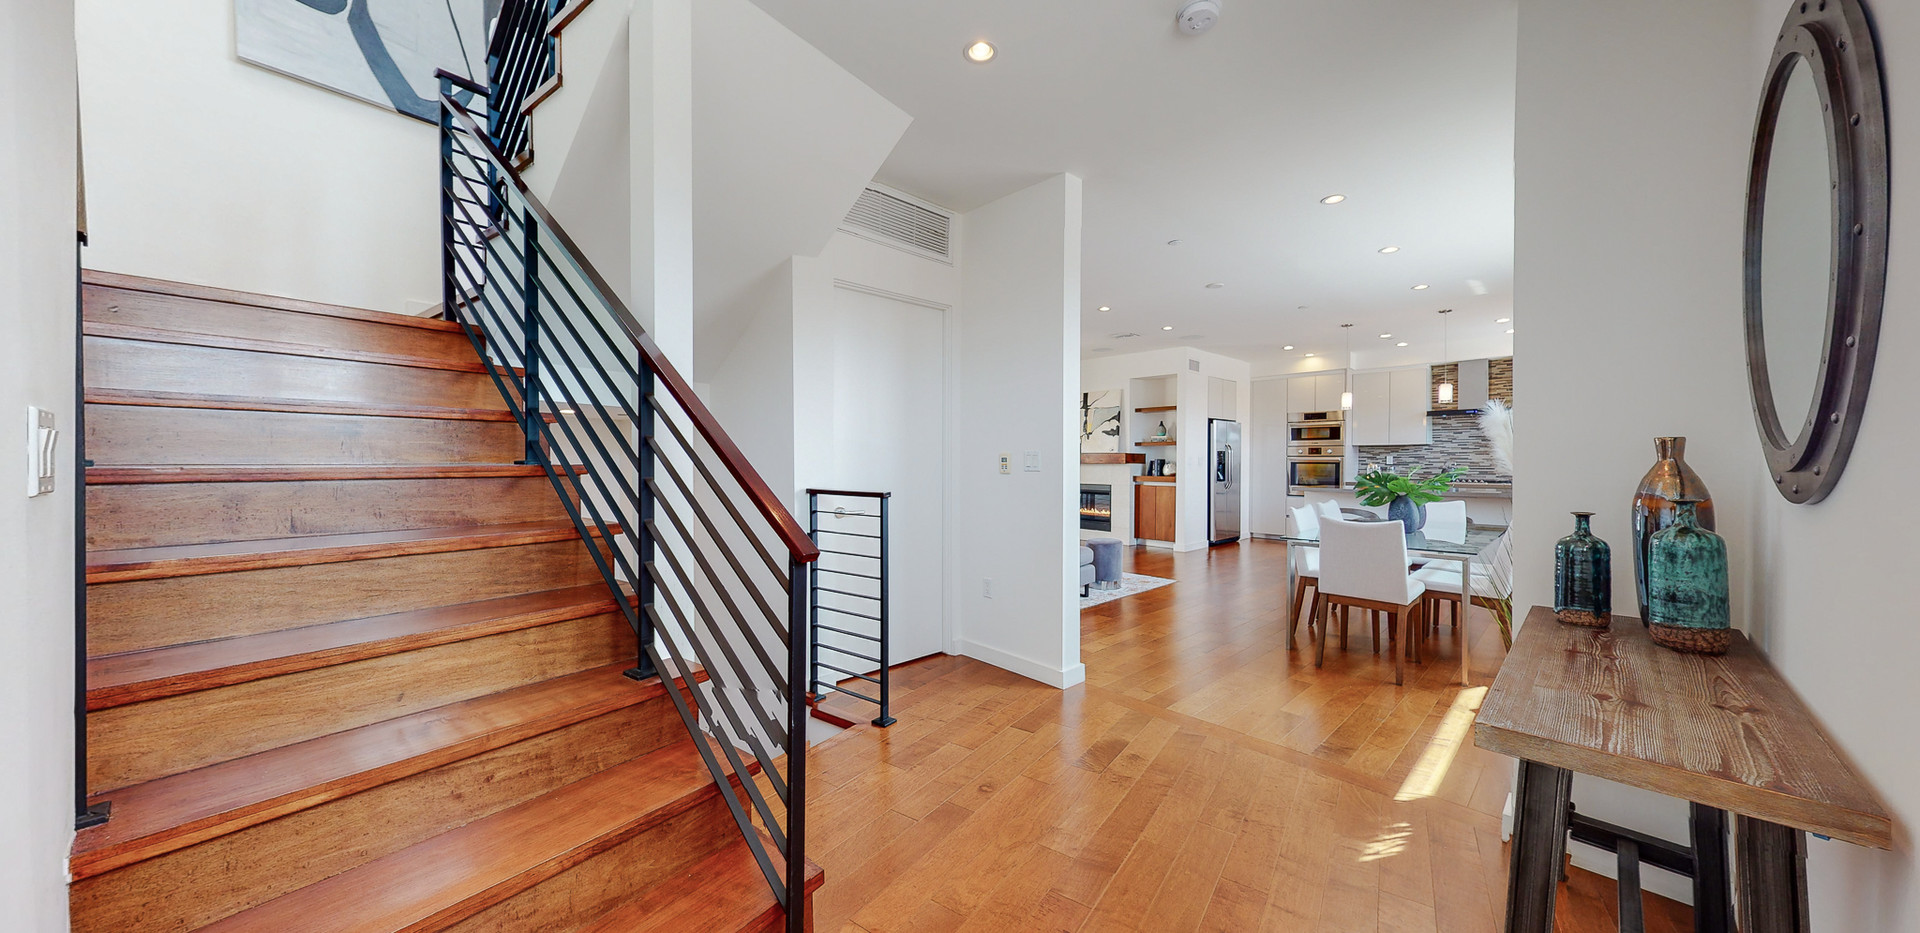 146 S Hayworth Ave-21.JPG